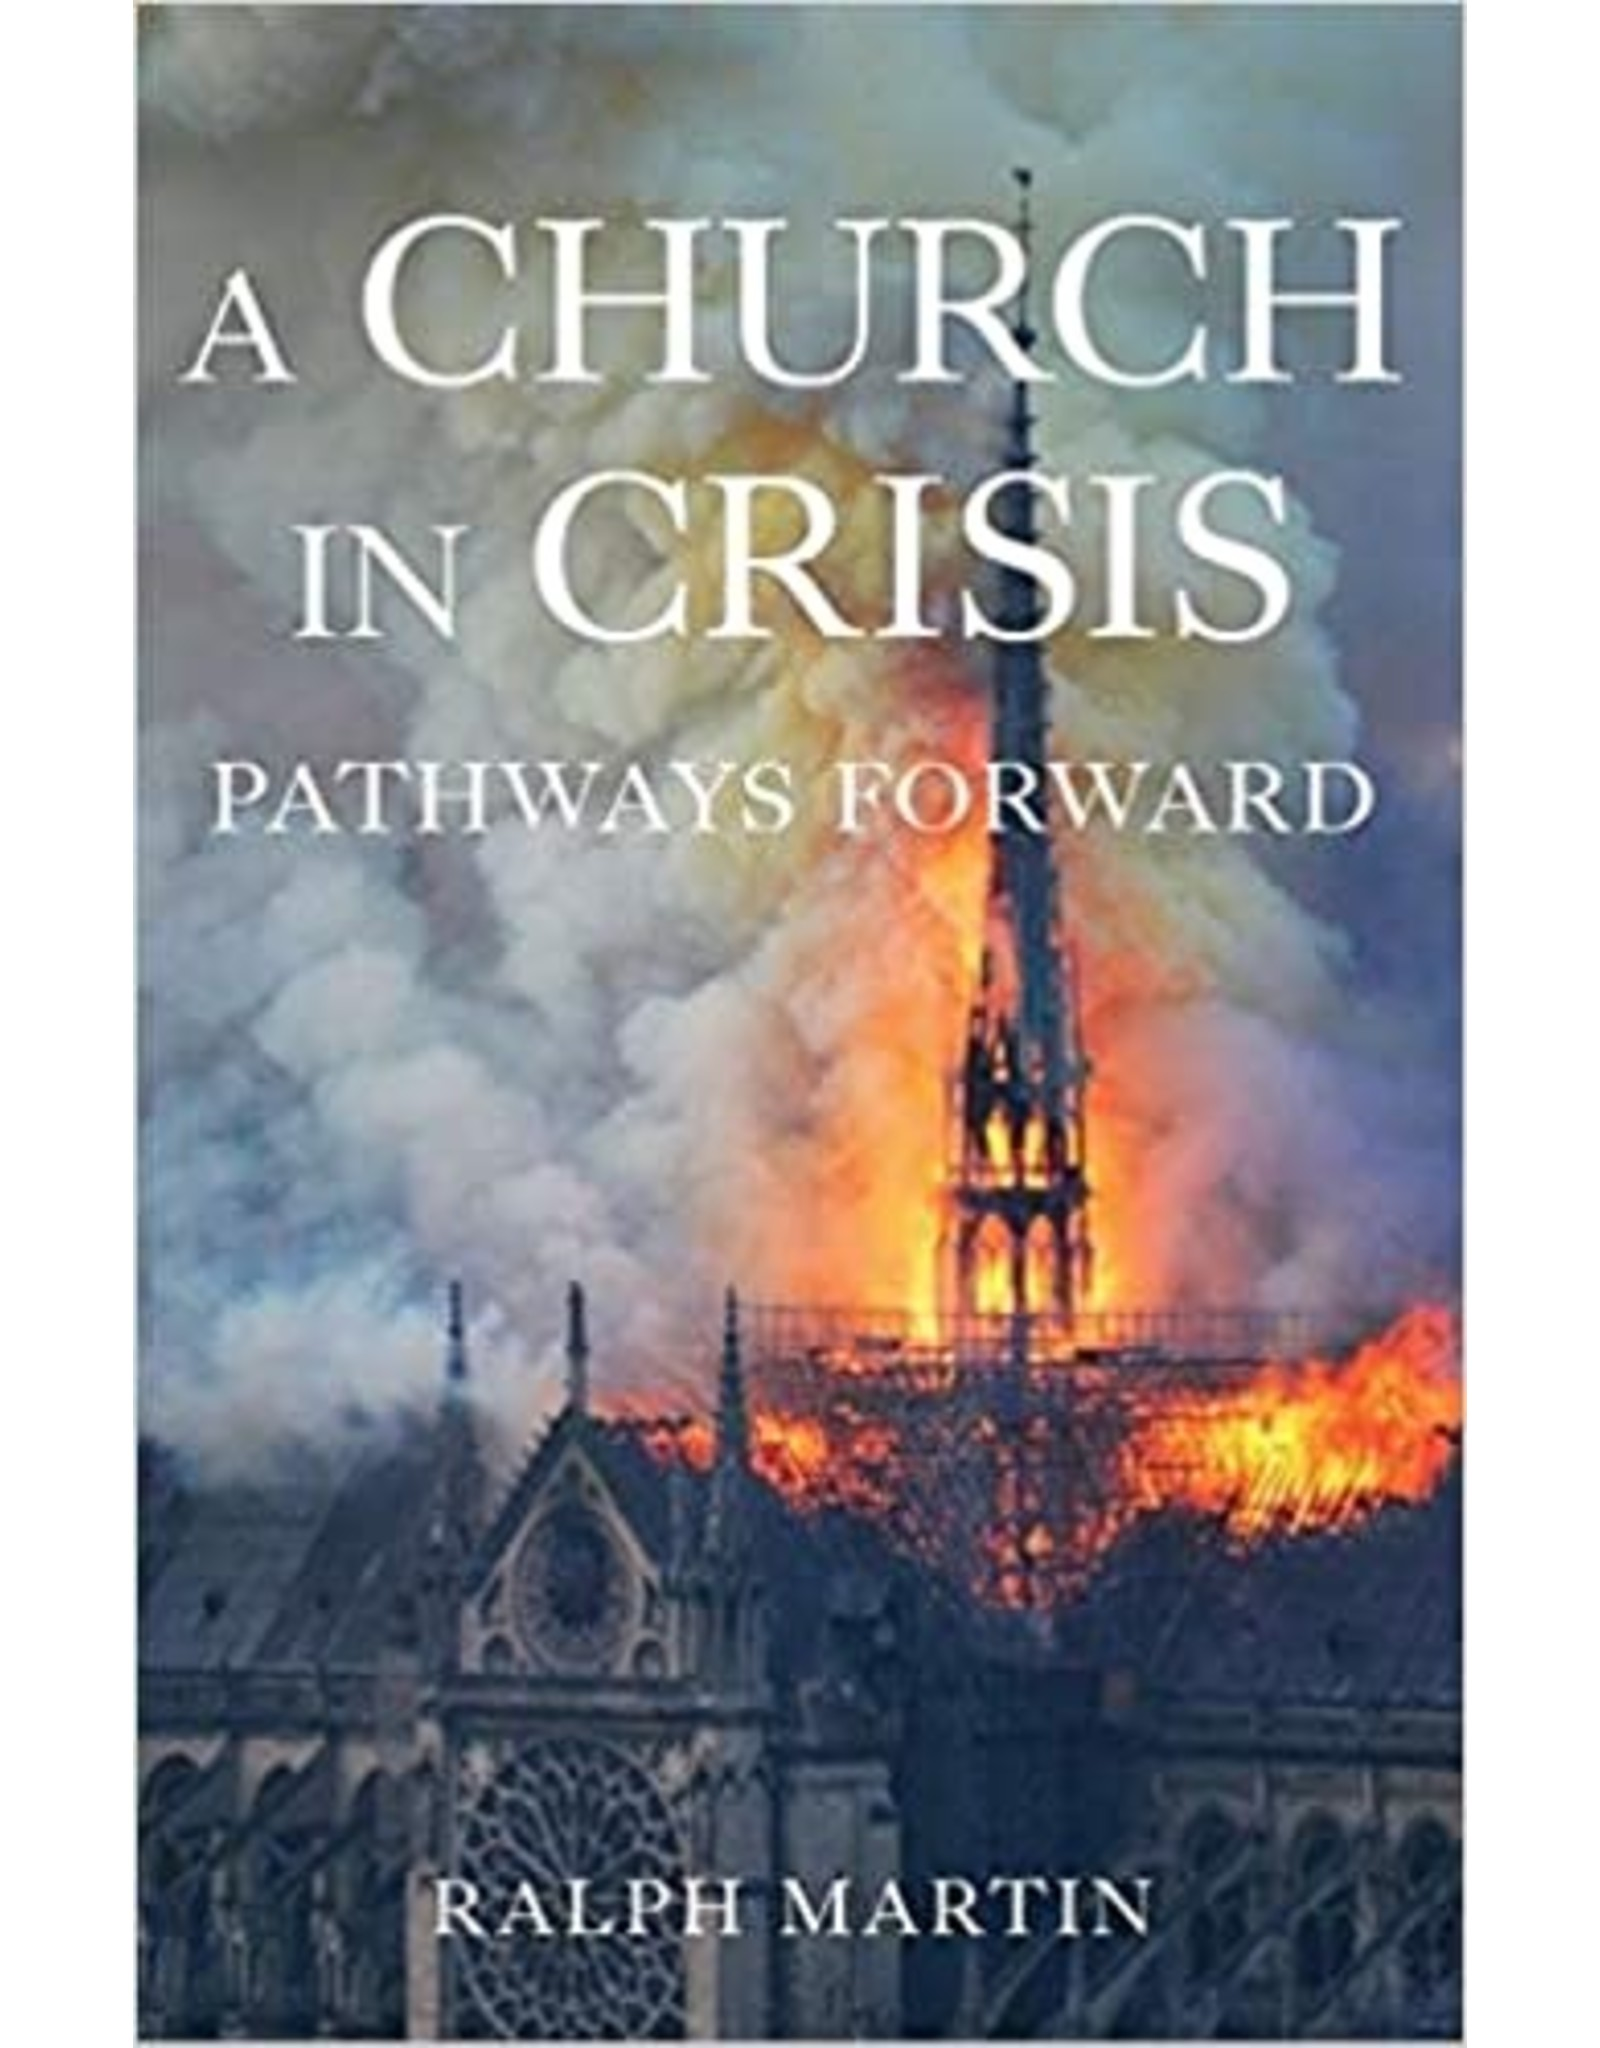 A Church in Crisis: Pathways Forward